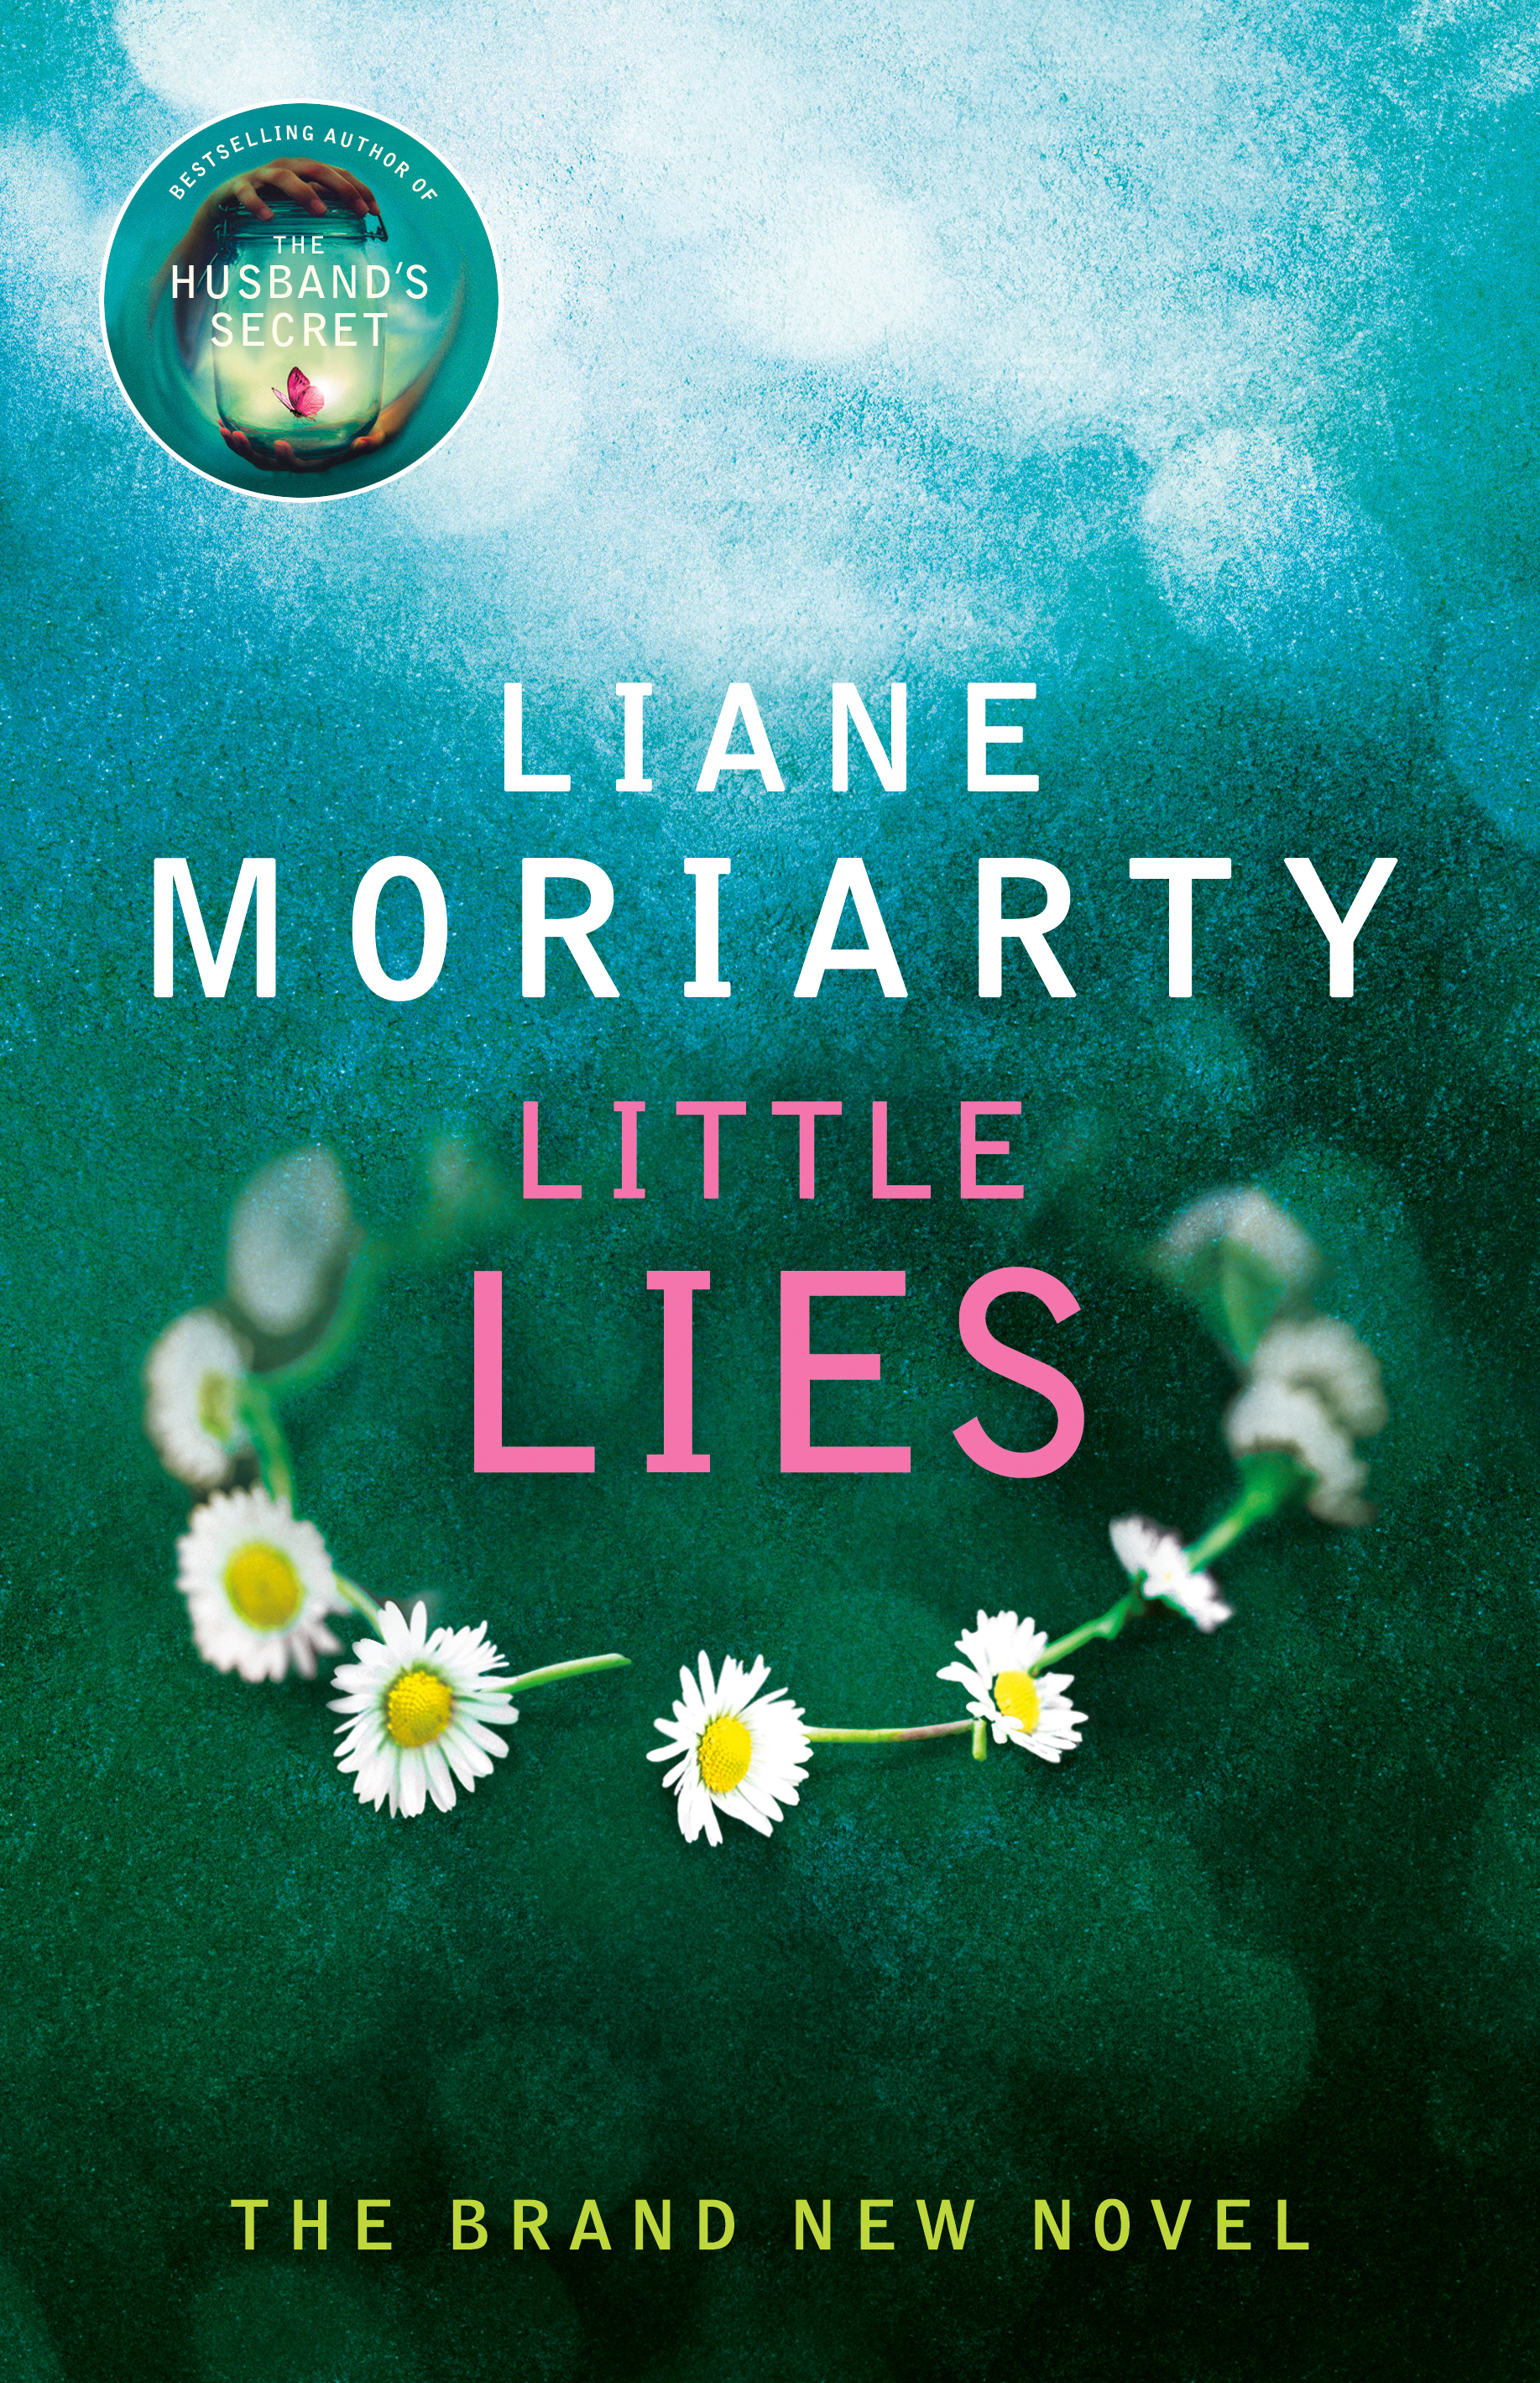 Big Little Lies by Liane Moriarty, ISBN: 9781405918466